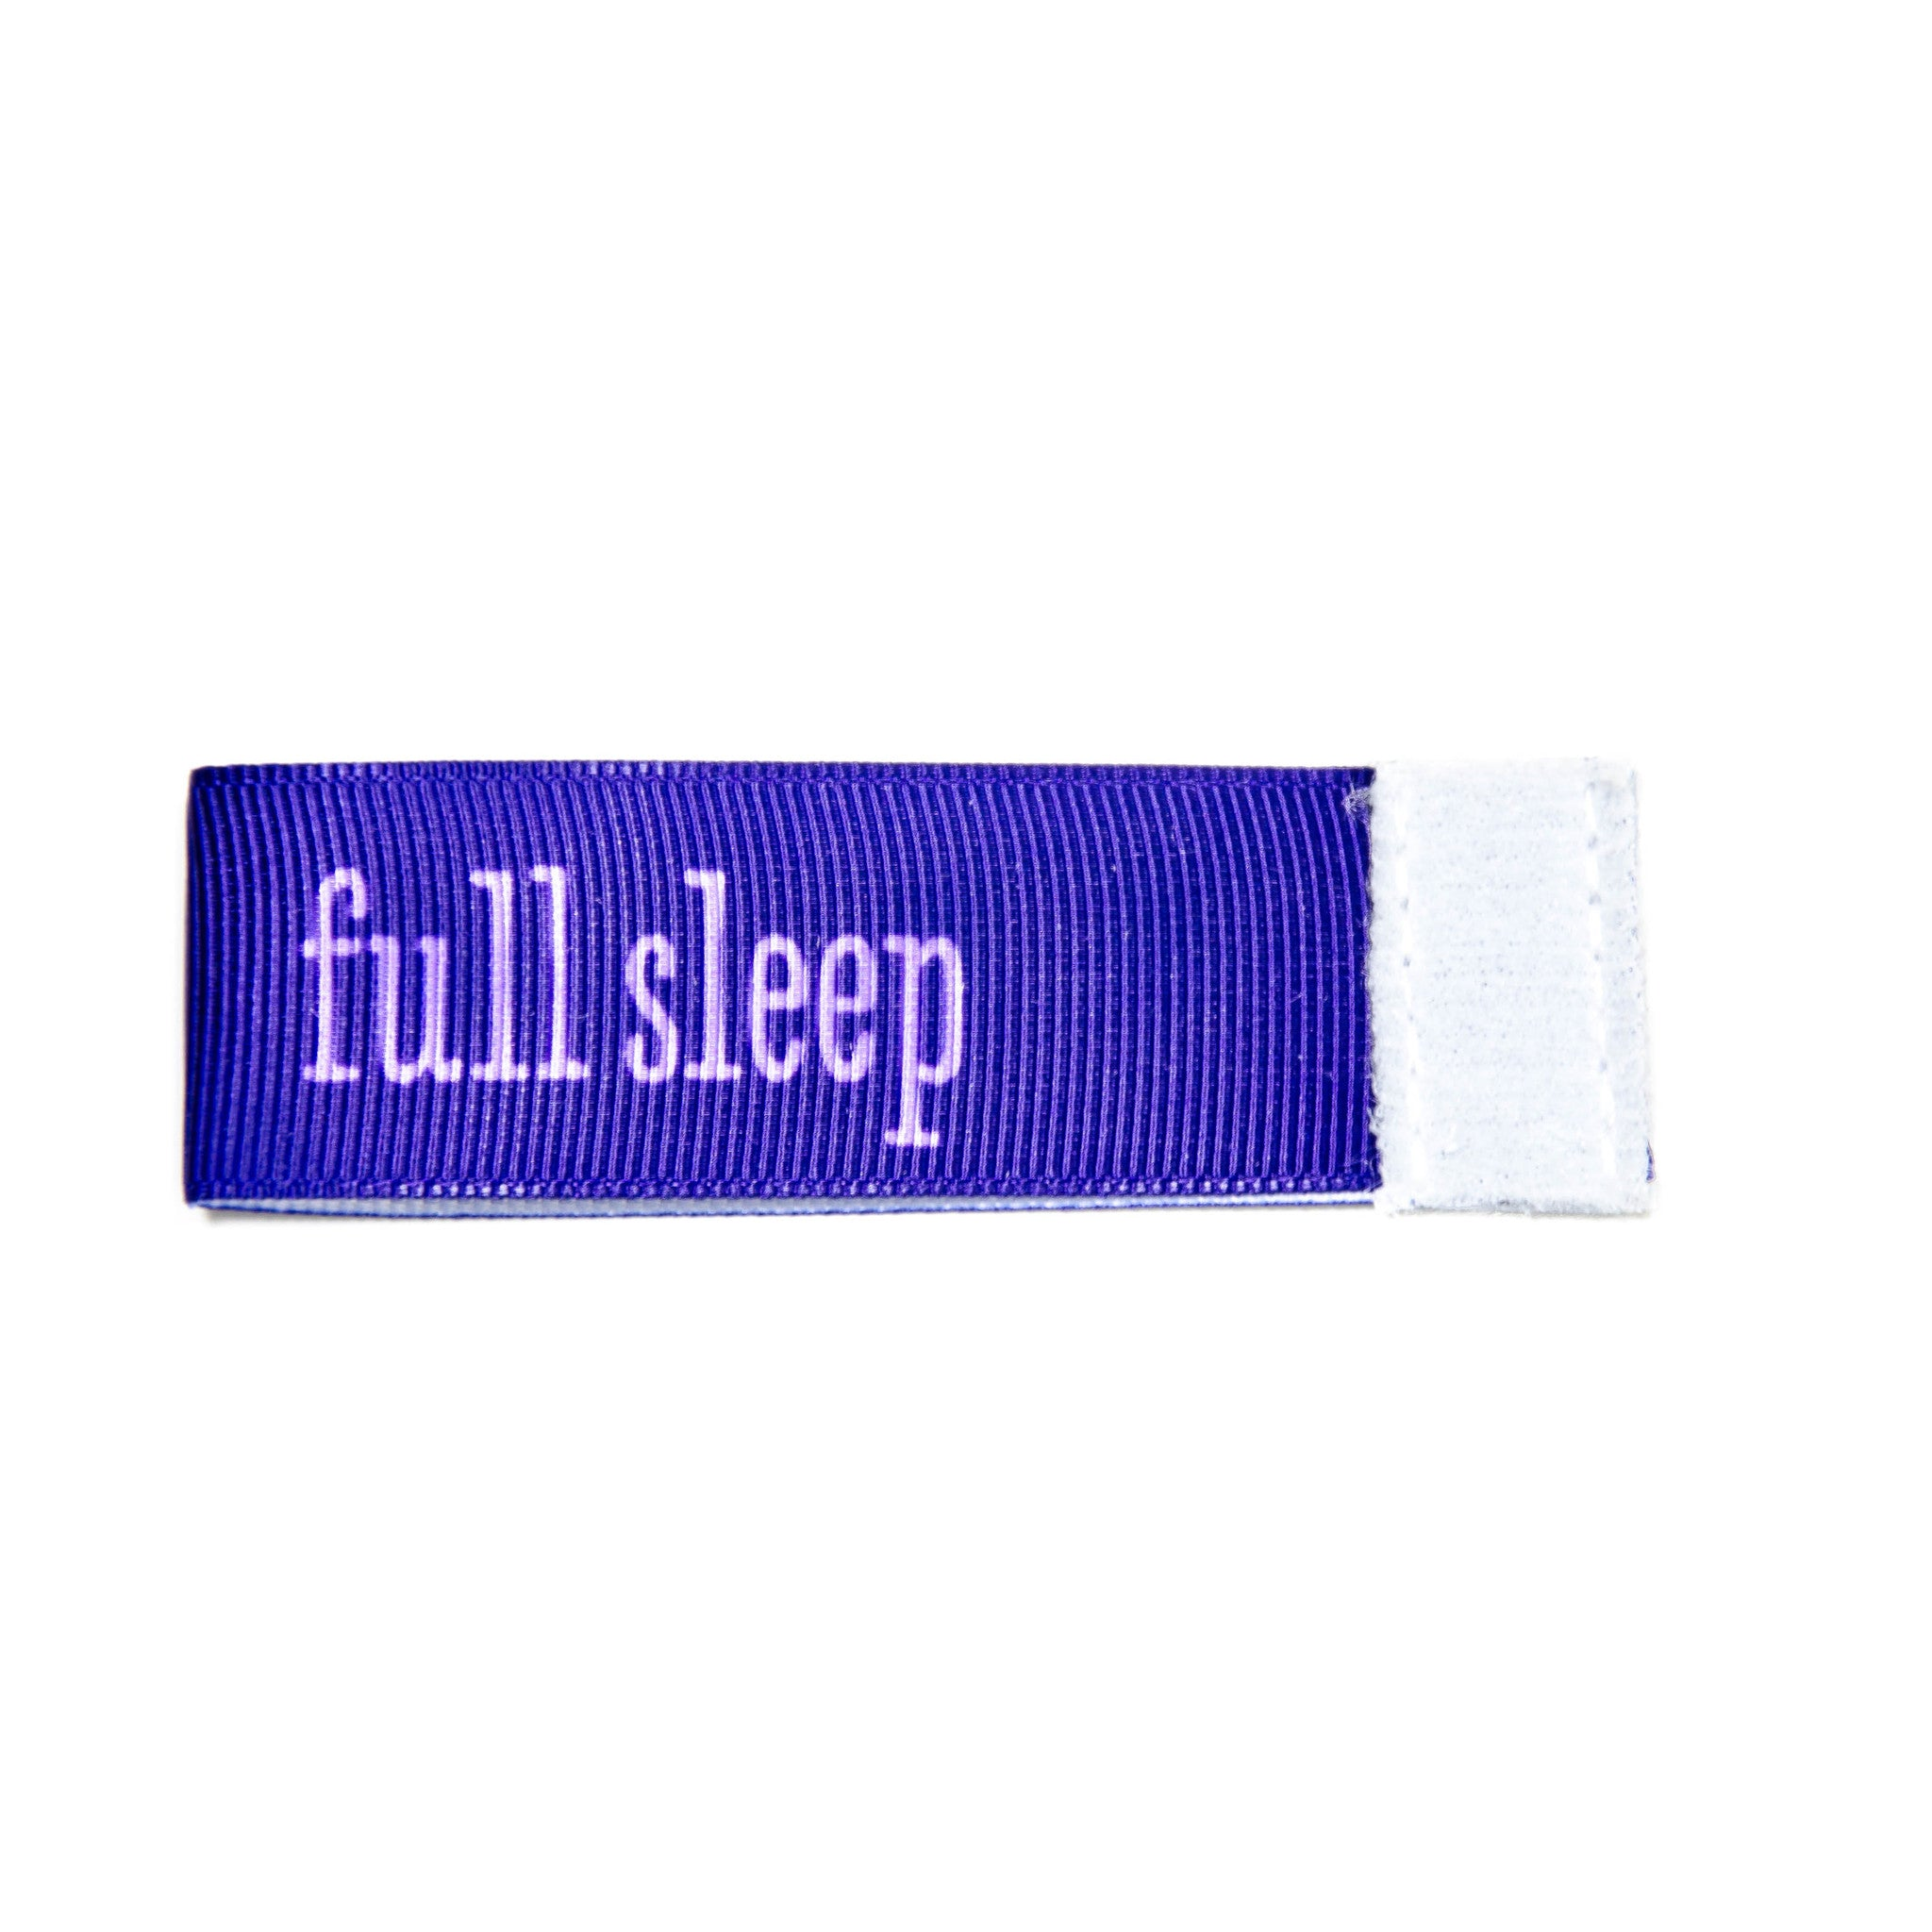 full sleep Wee Charm ribbon blue